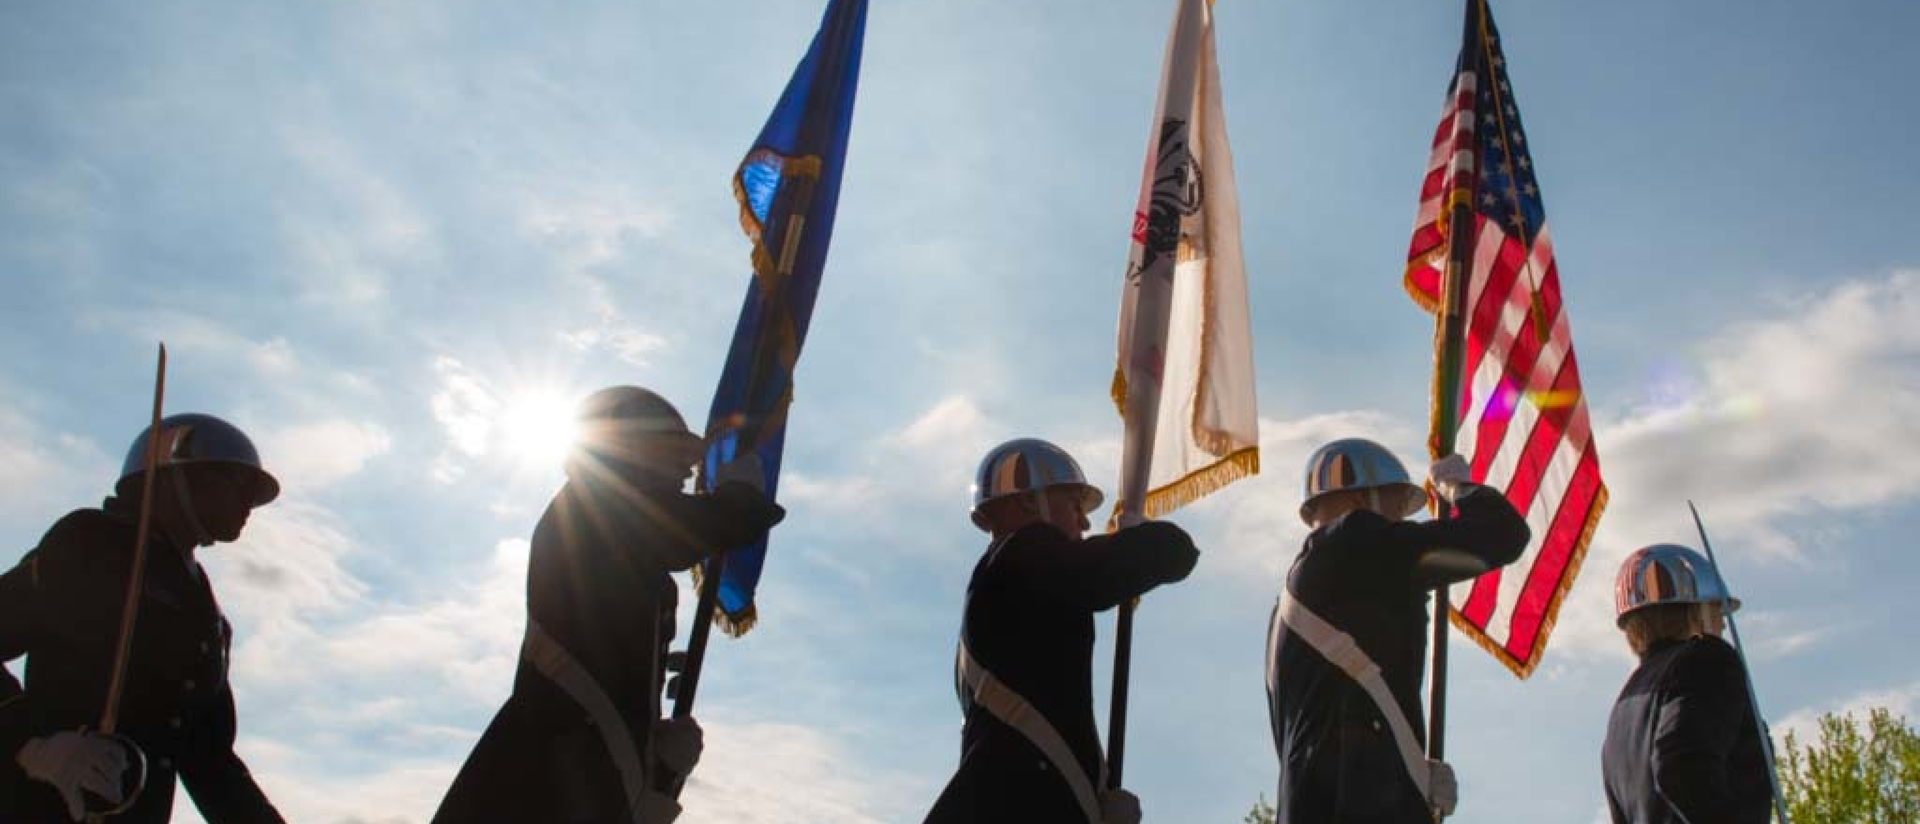 ROTC color guard